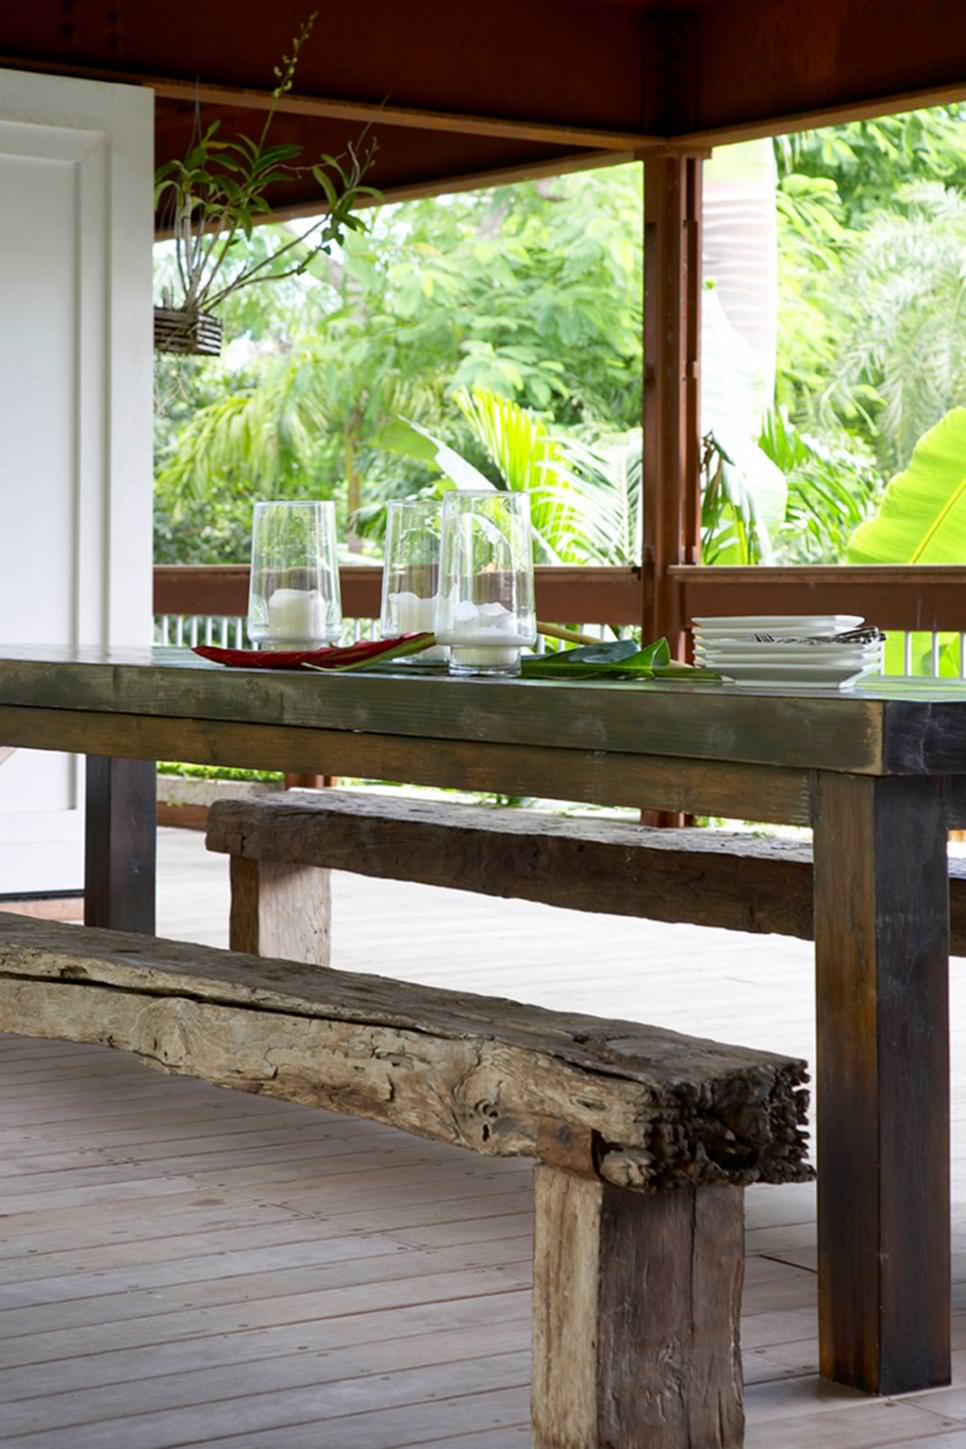 19 Rustic Outdoor Bench Designs Decorating Ideas